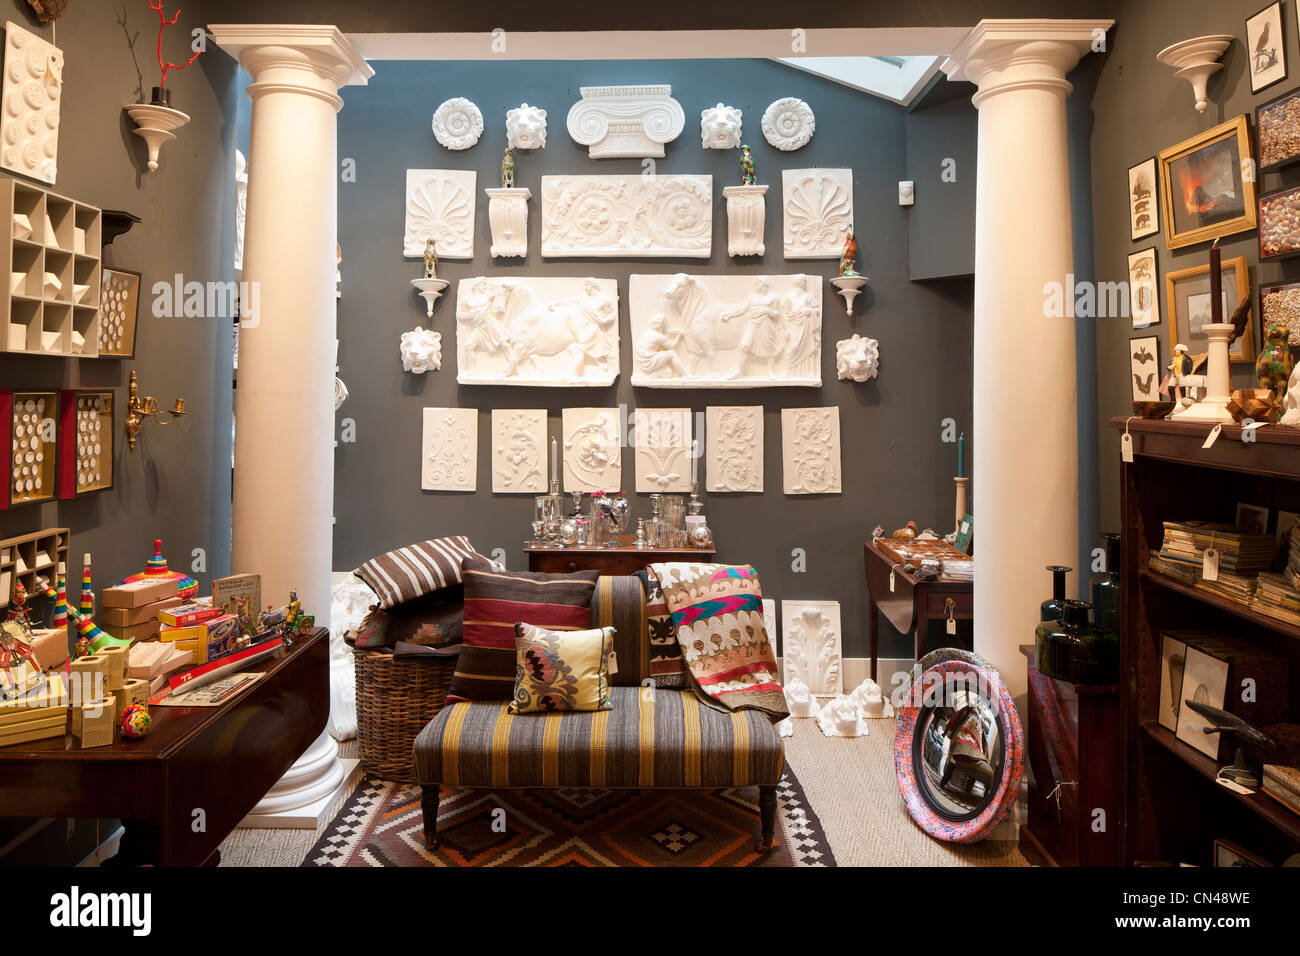 United kingdom london bloomsbury ben pentreath shop interior stock photo royalty free image Interior design stores london